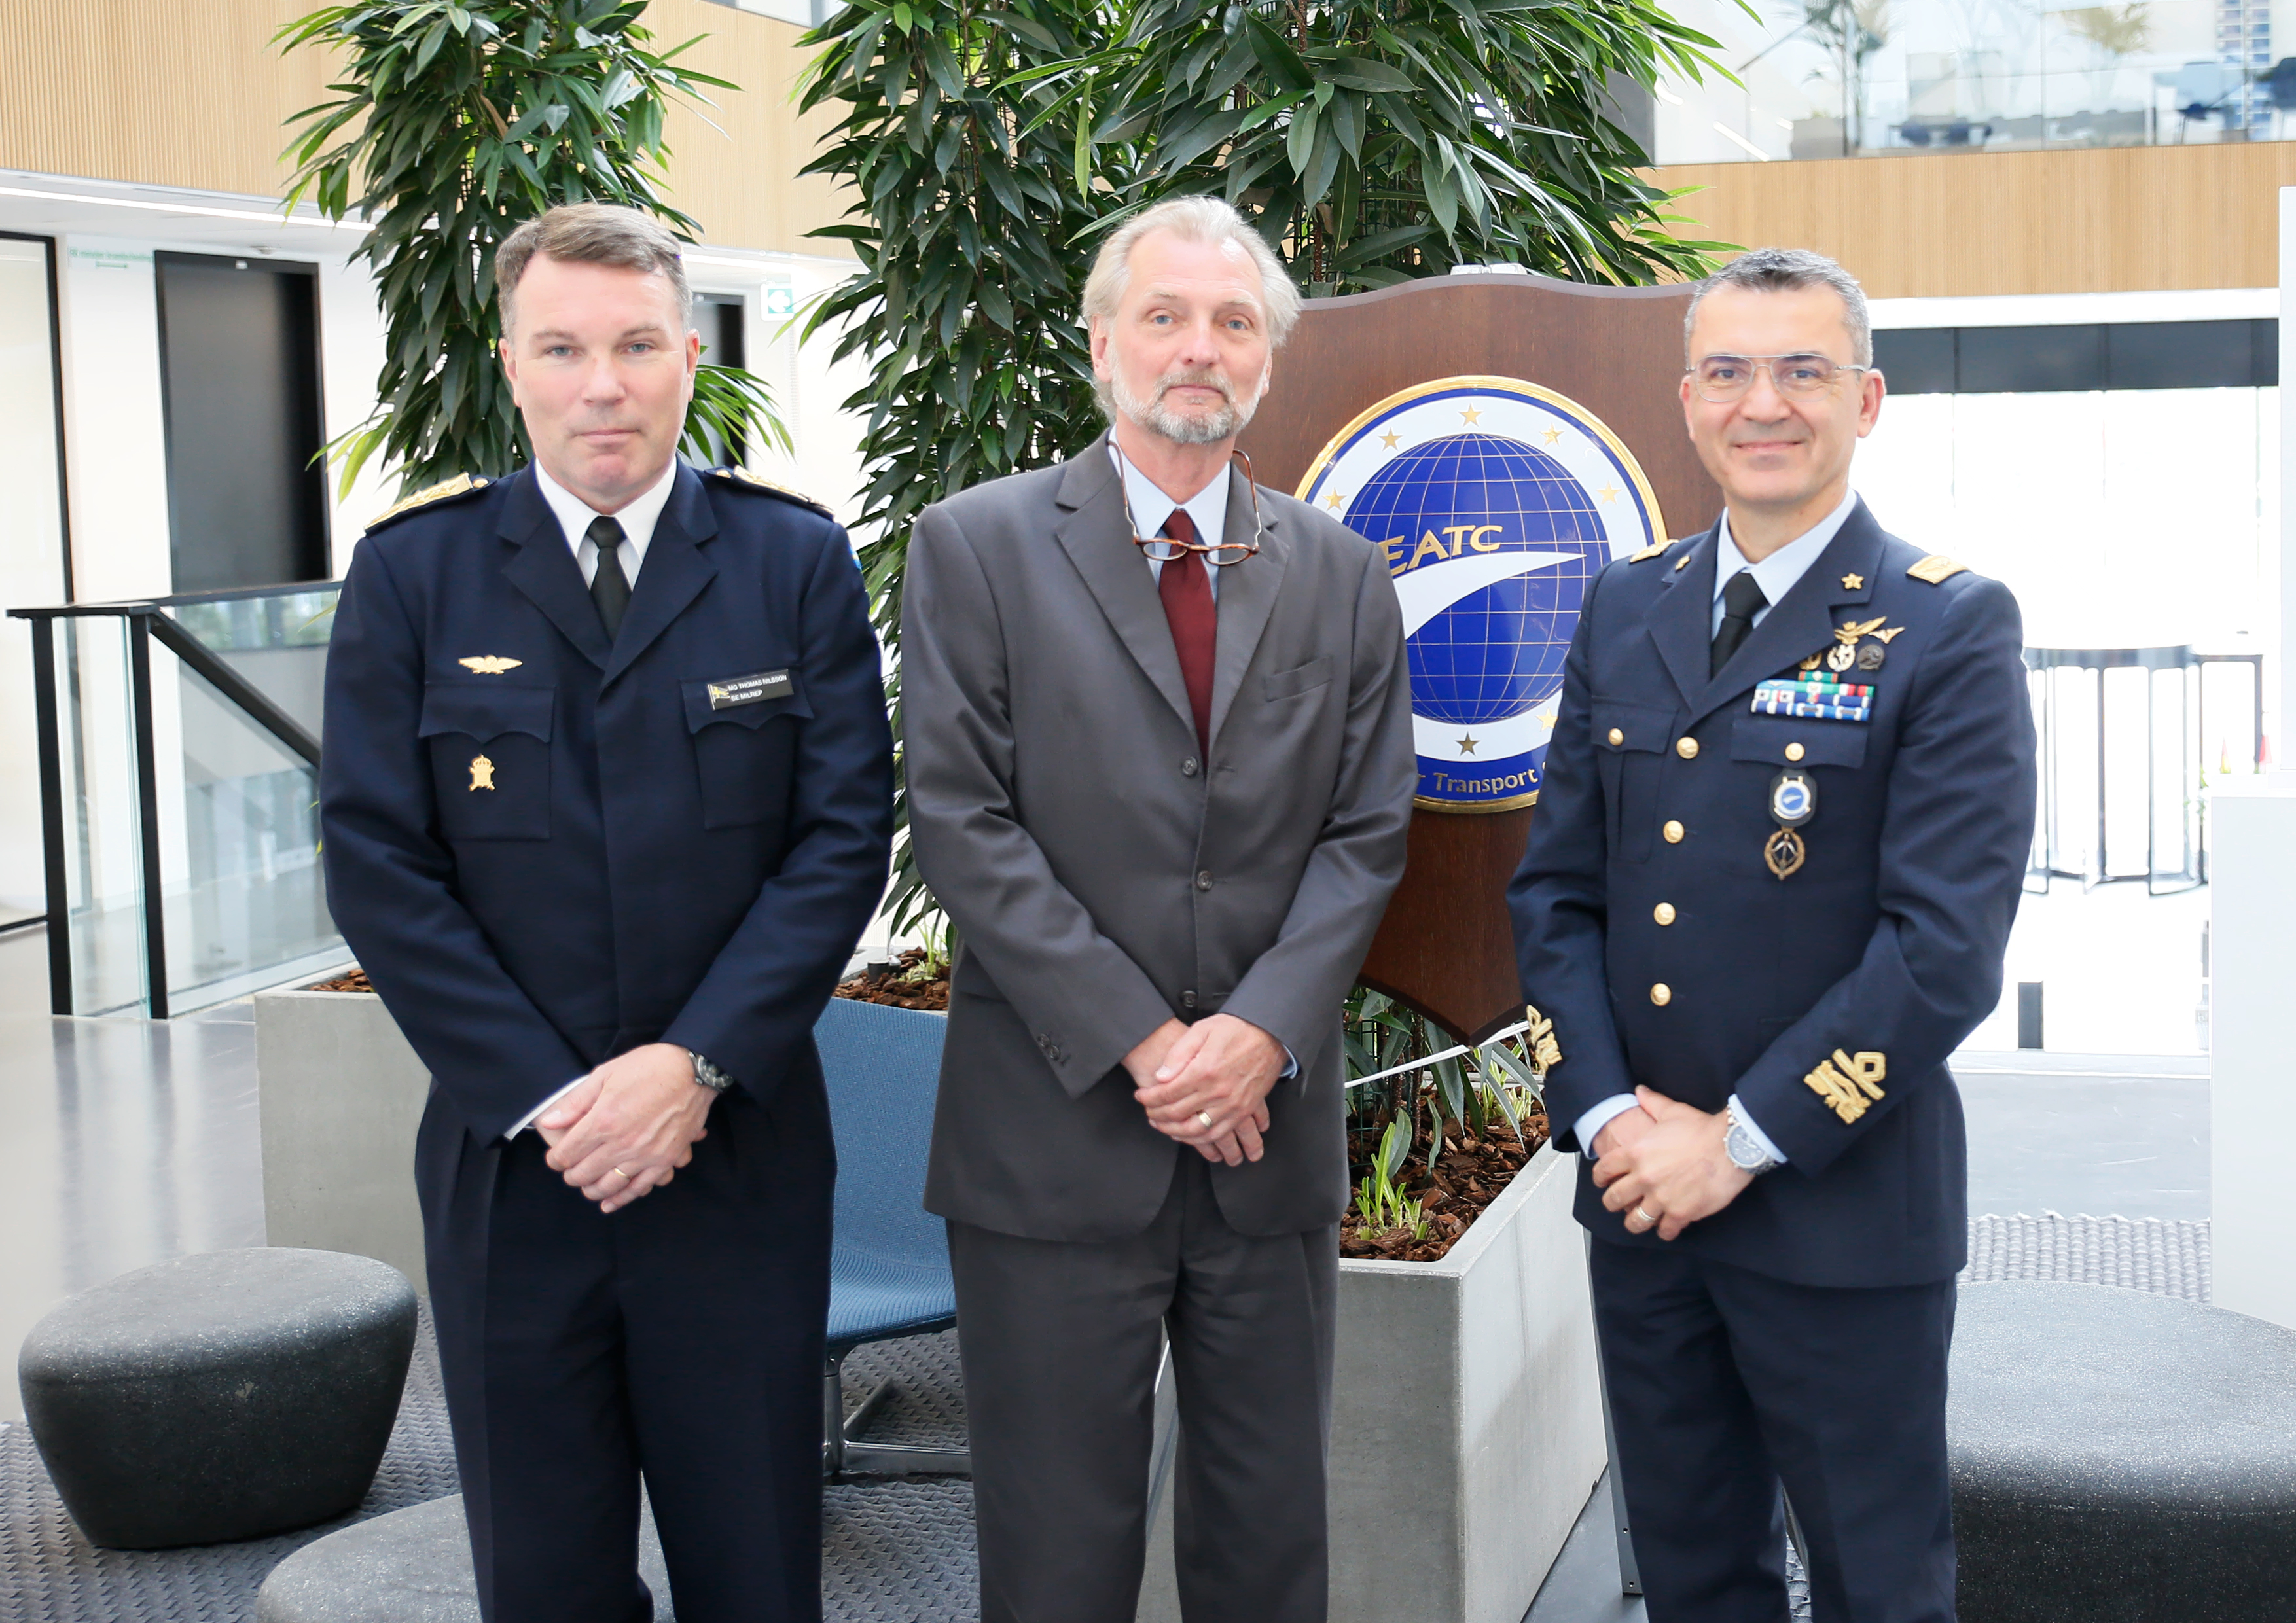 Head of Mission of Sweden to NATO visited EATC